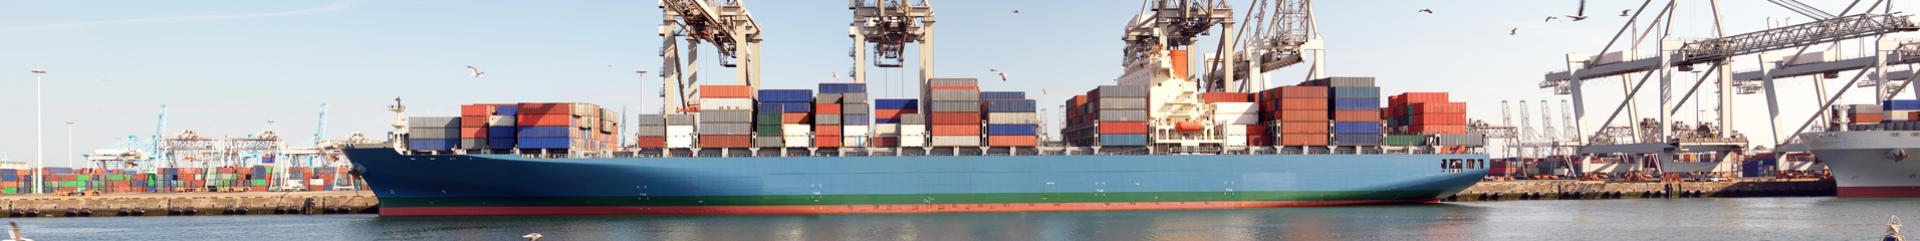 import export trade full container load cif